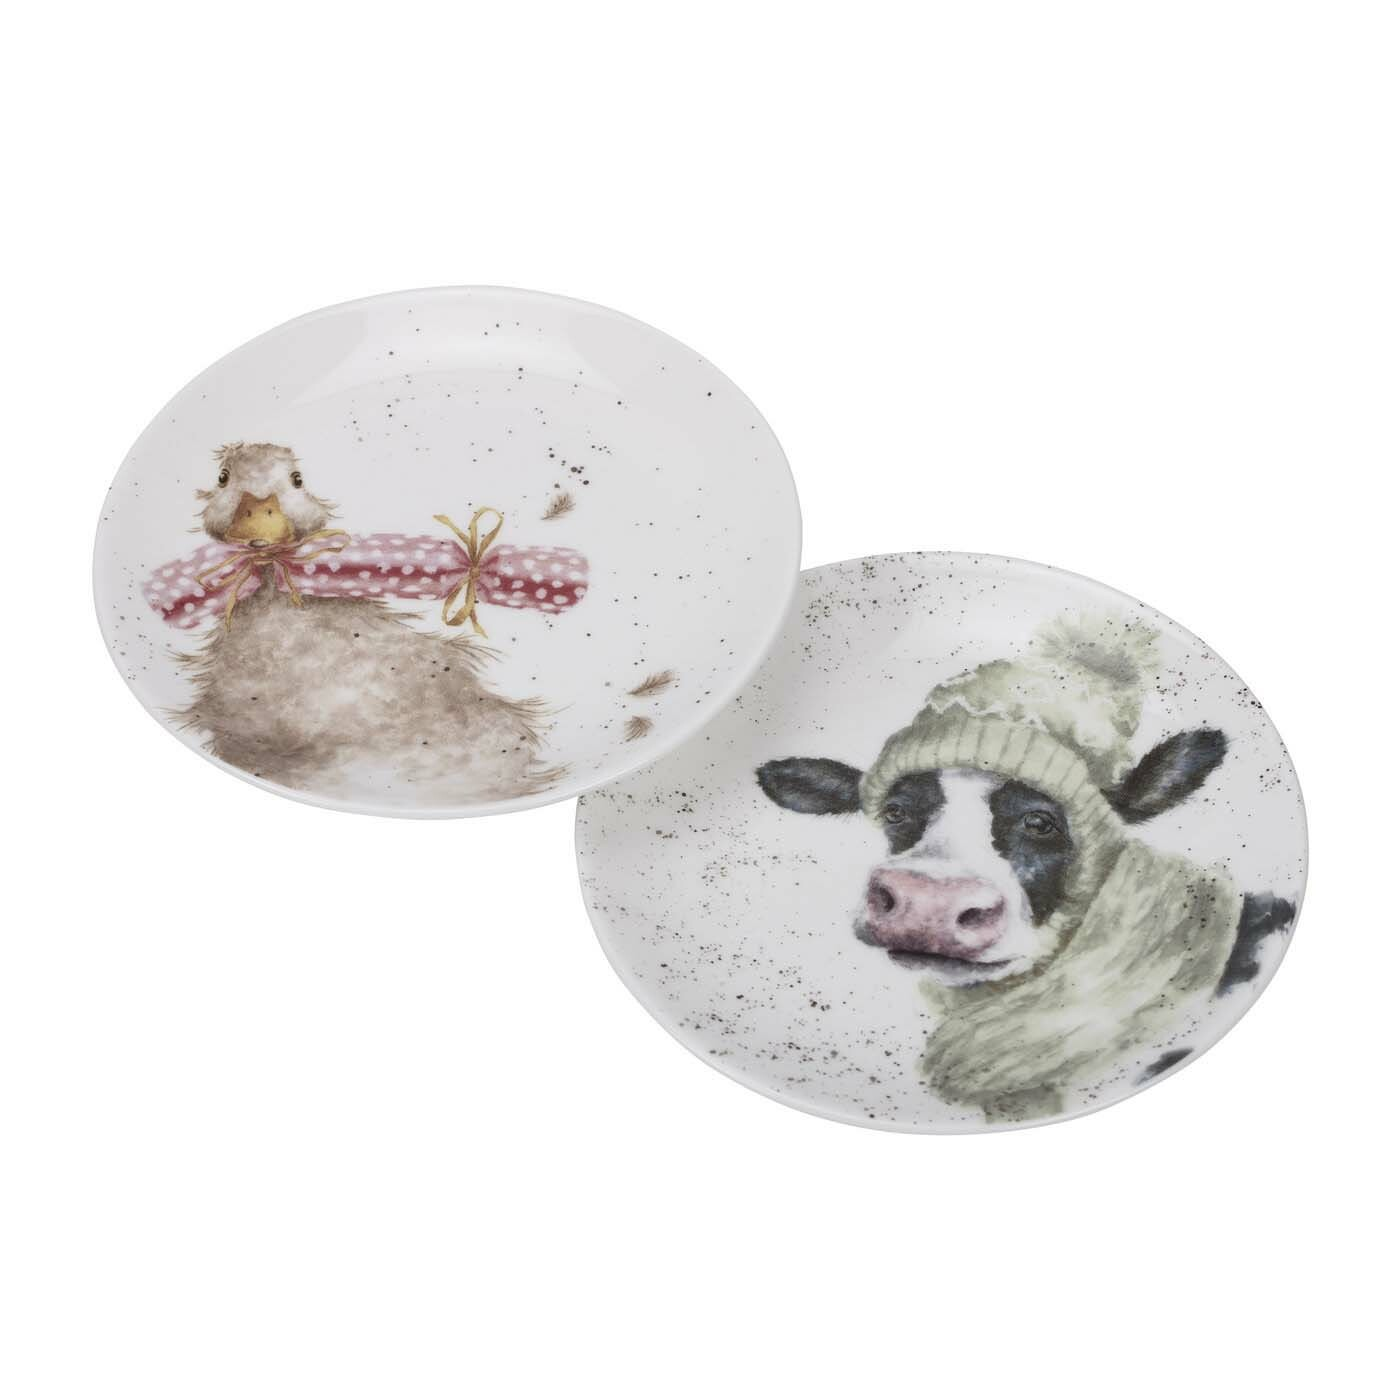 COUPE PLATE SET - COW AND DUCK